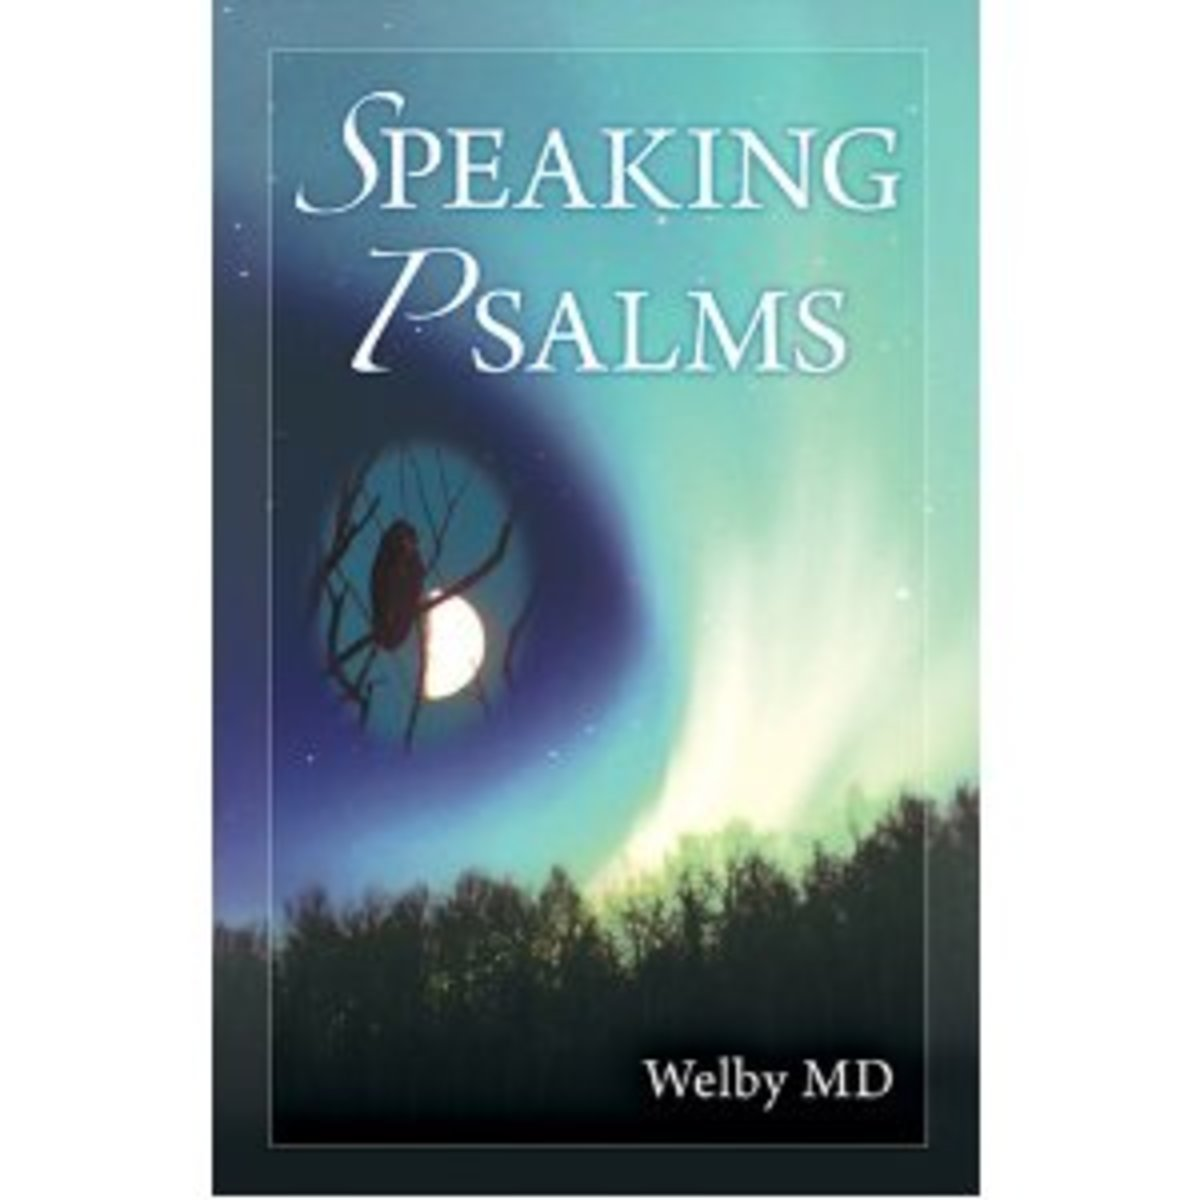 Speaking Psalms by Welby MD